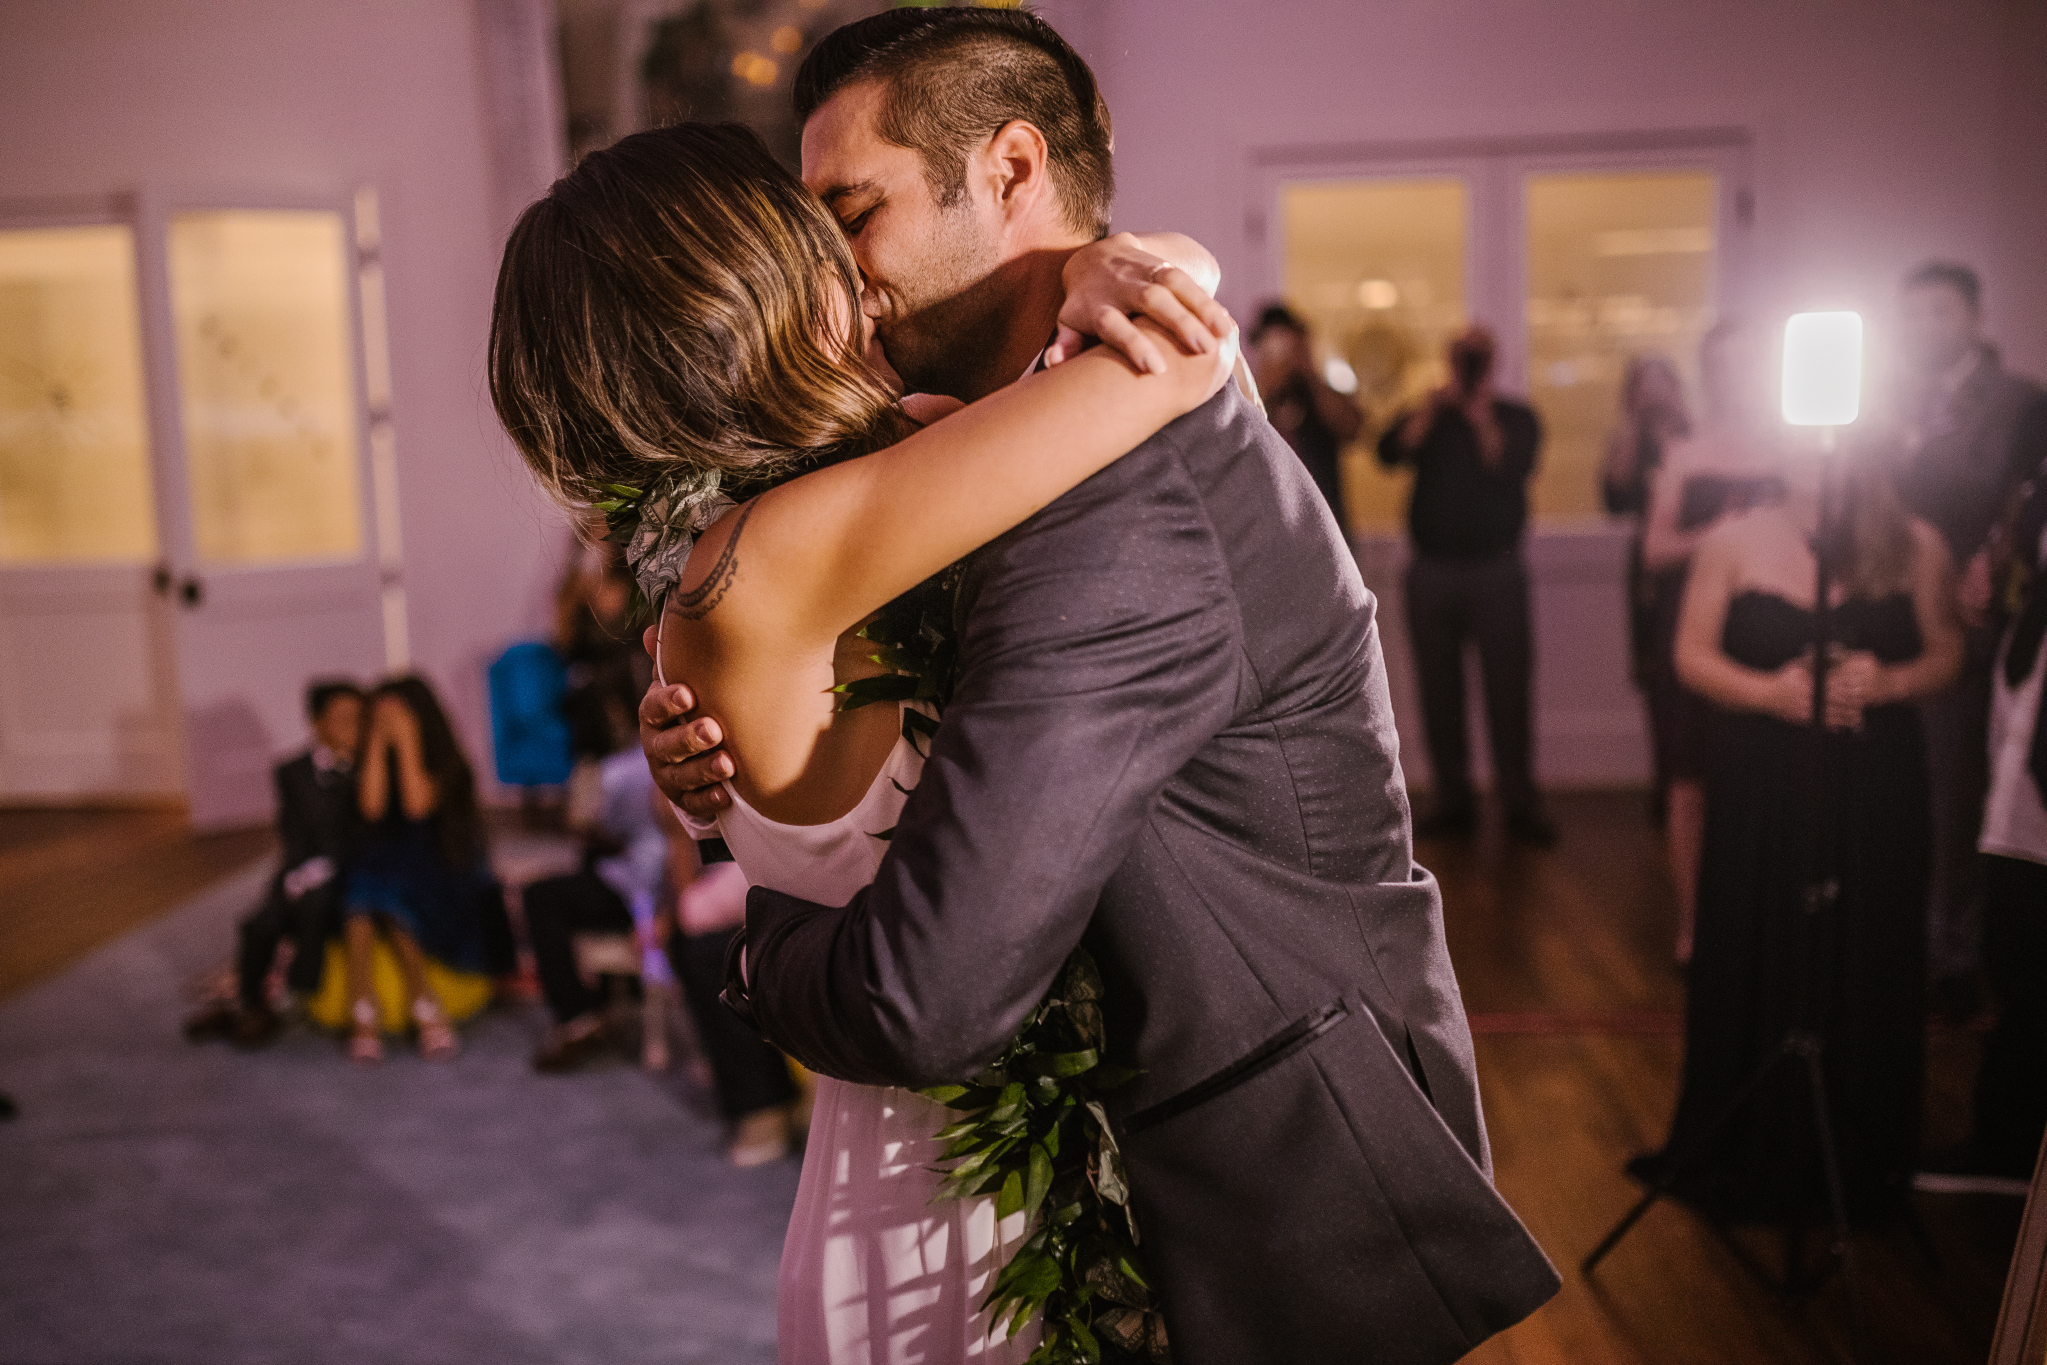 san diego wedding photographer | bride and groom standing and hugging tightly on dance floor with lighting in background